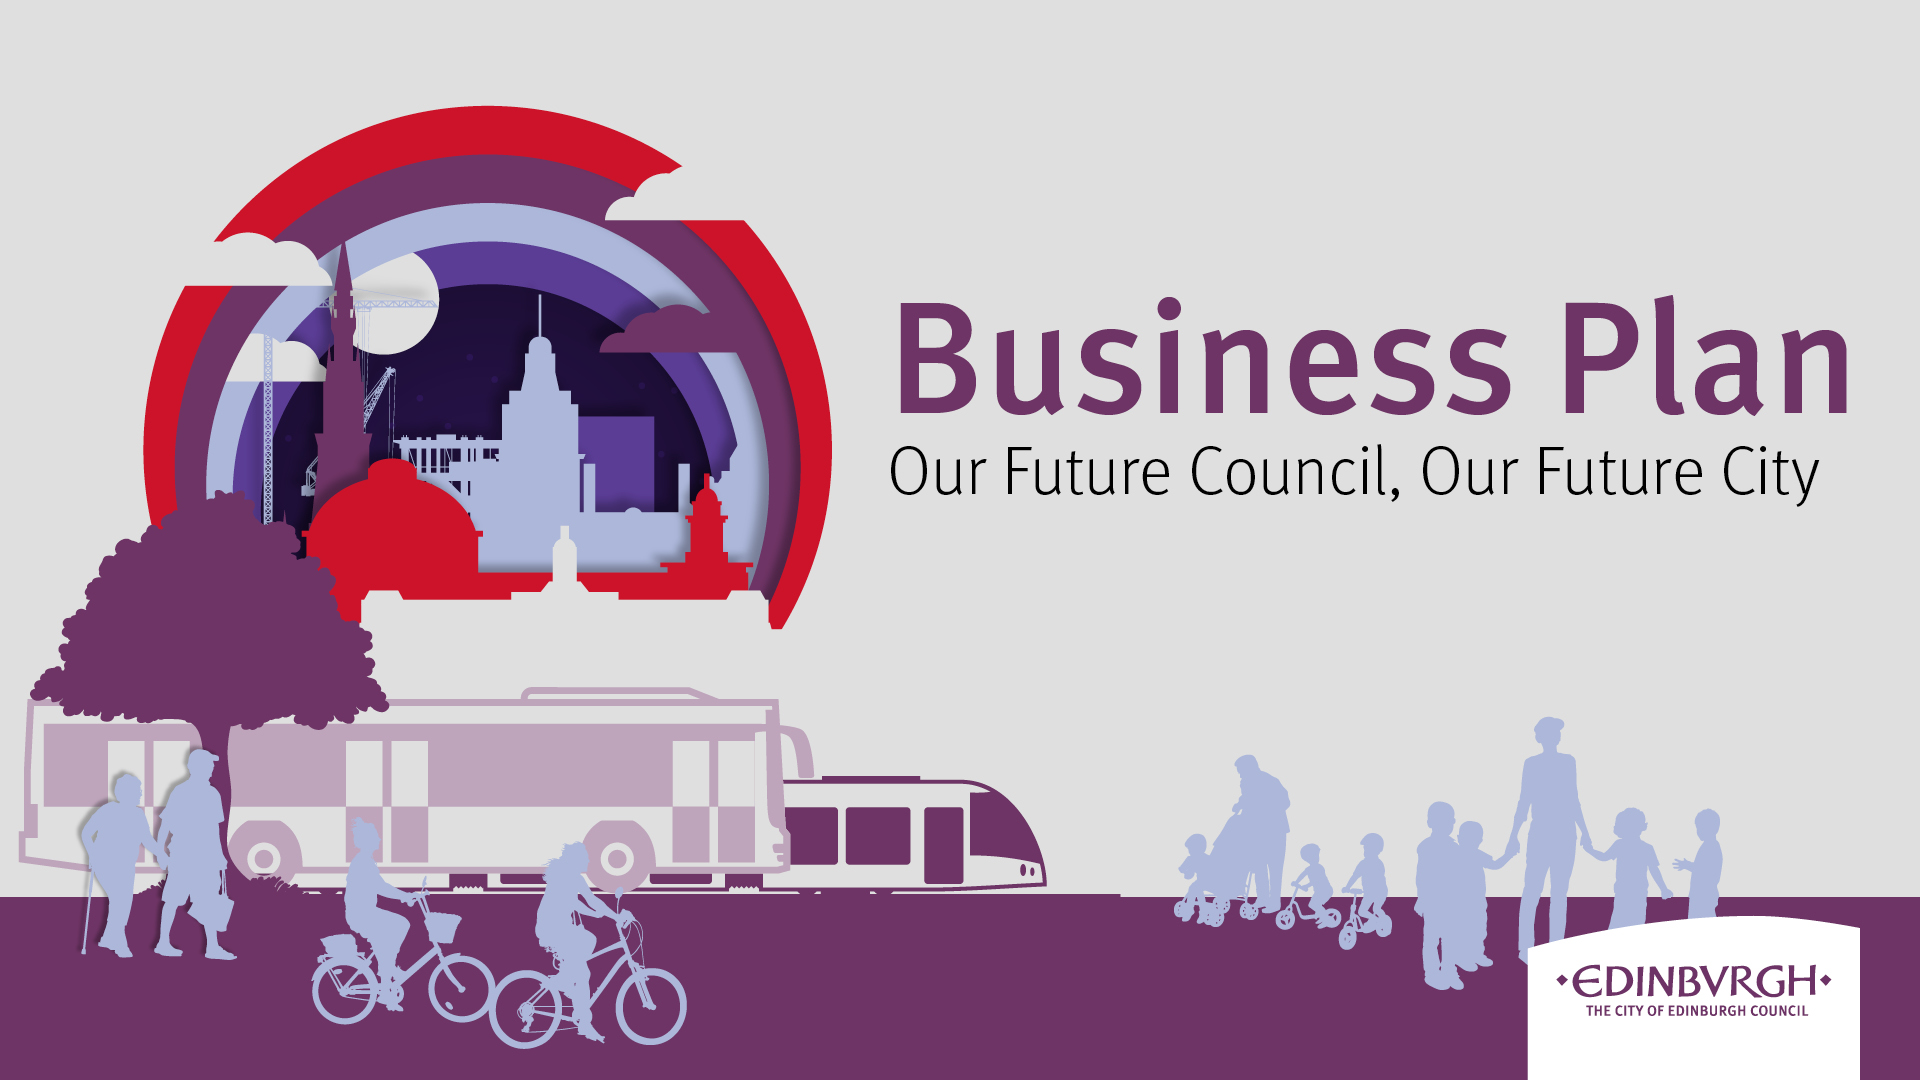 Our Future Council, Our Future City. Council Business Plan